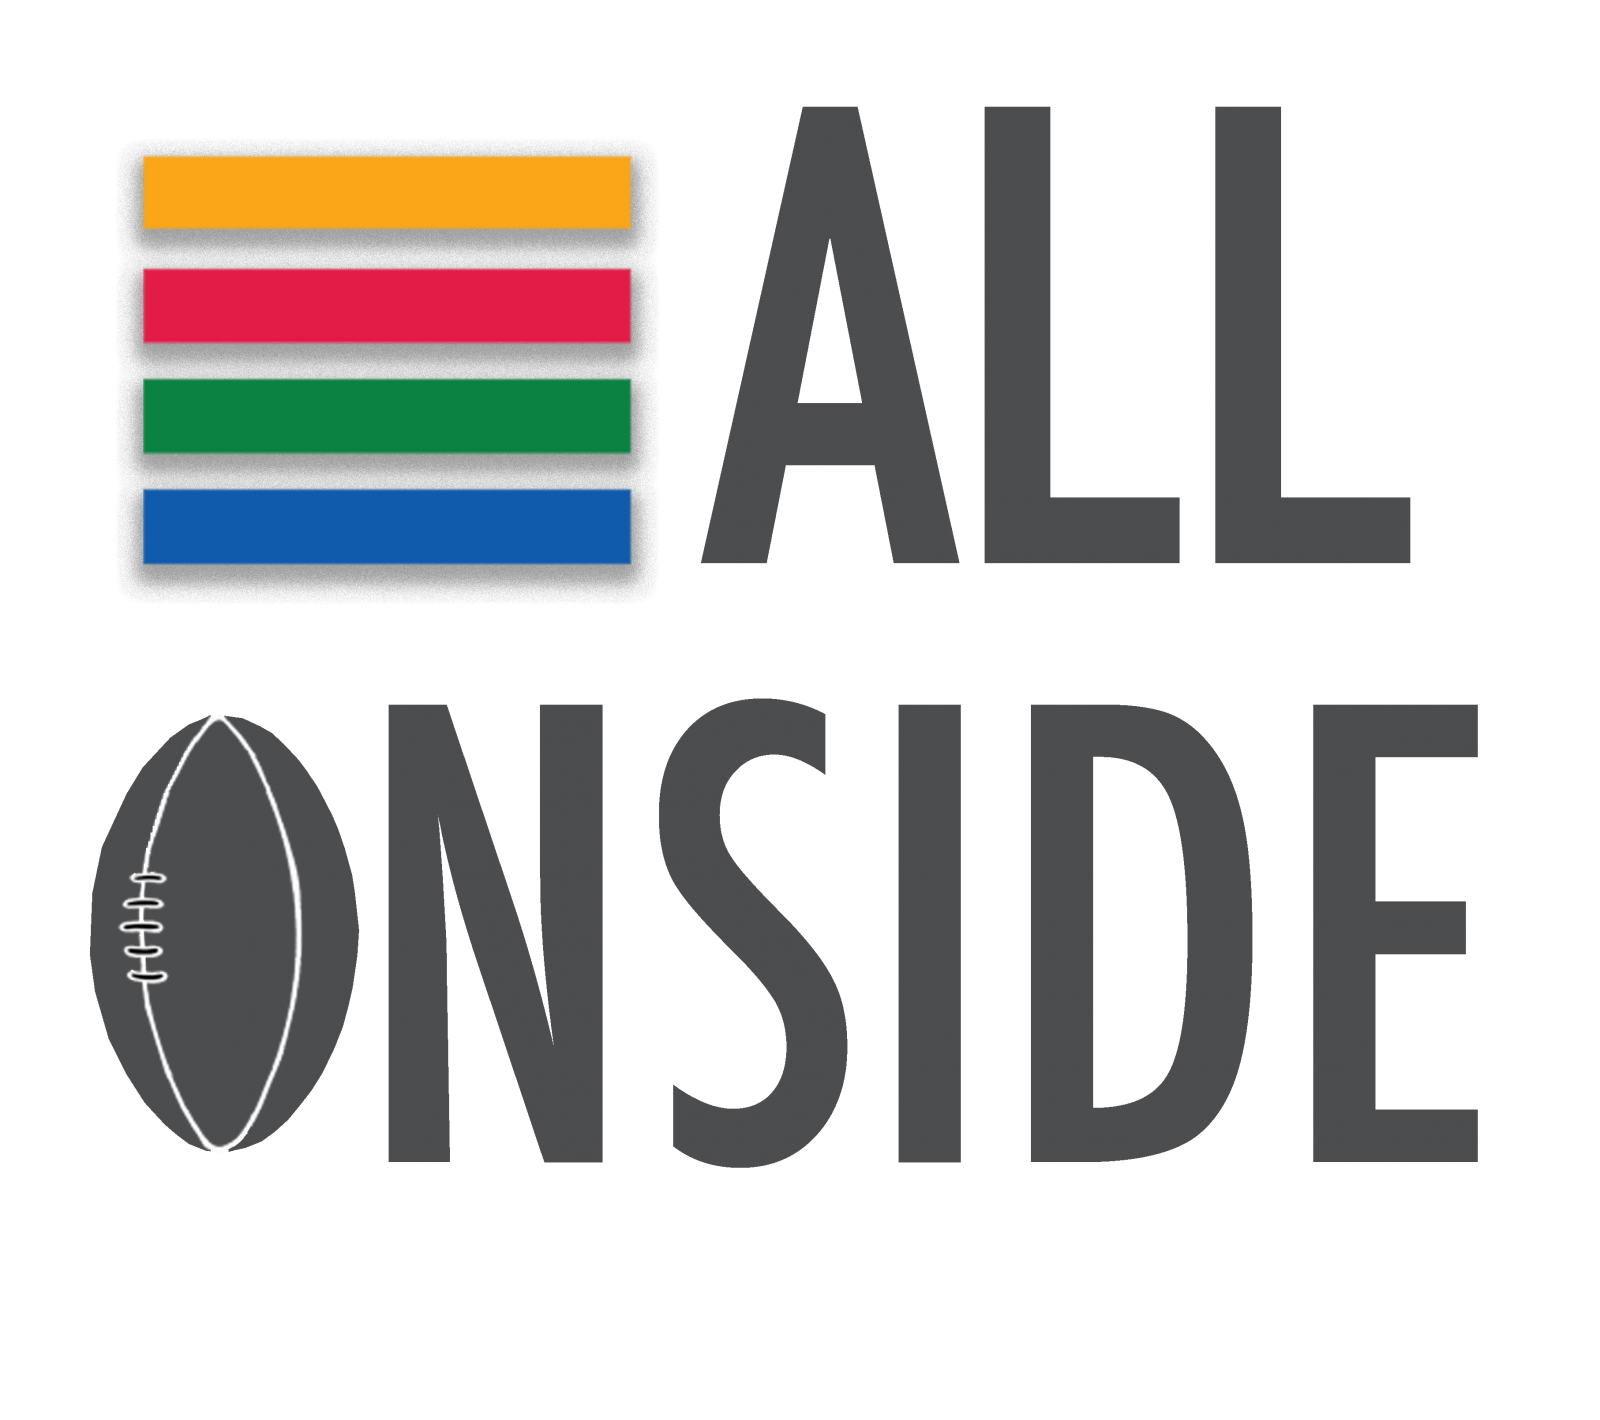 All Onside! RL fans everywhere urged to get fit with RL Cares